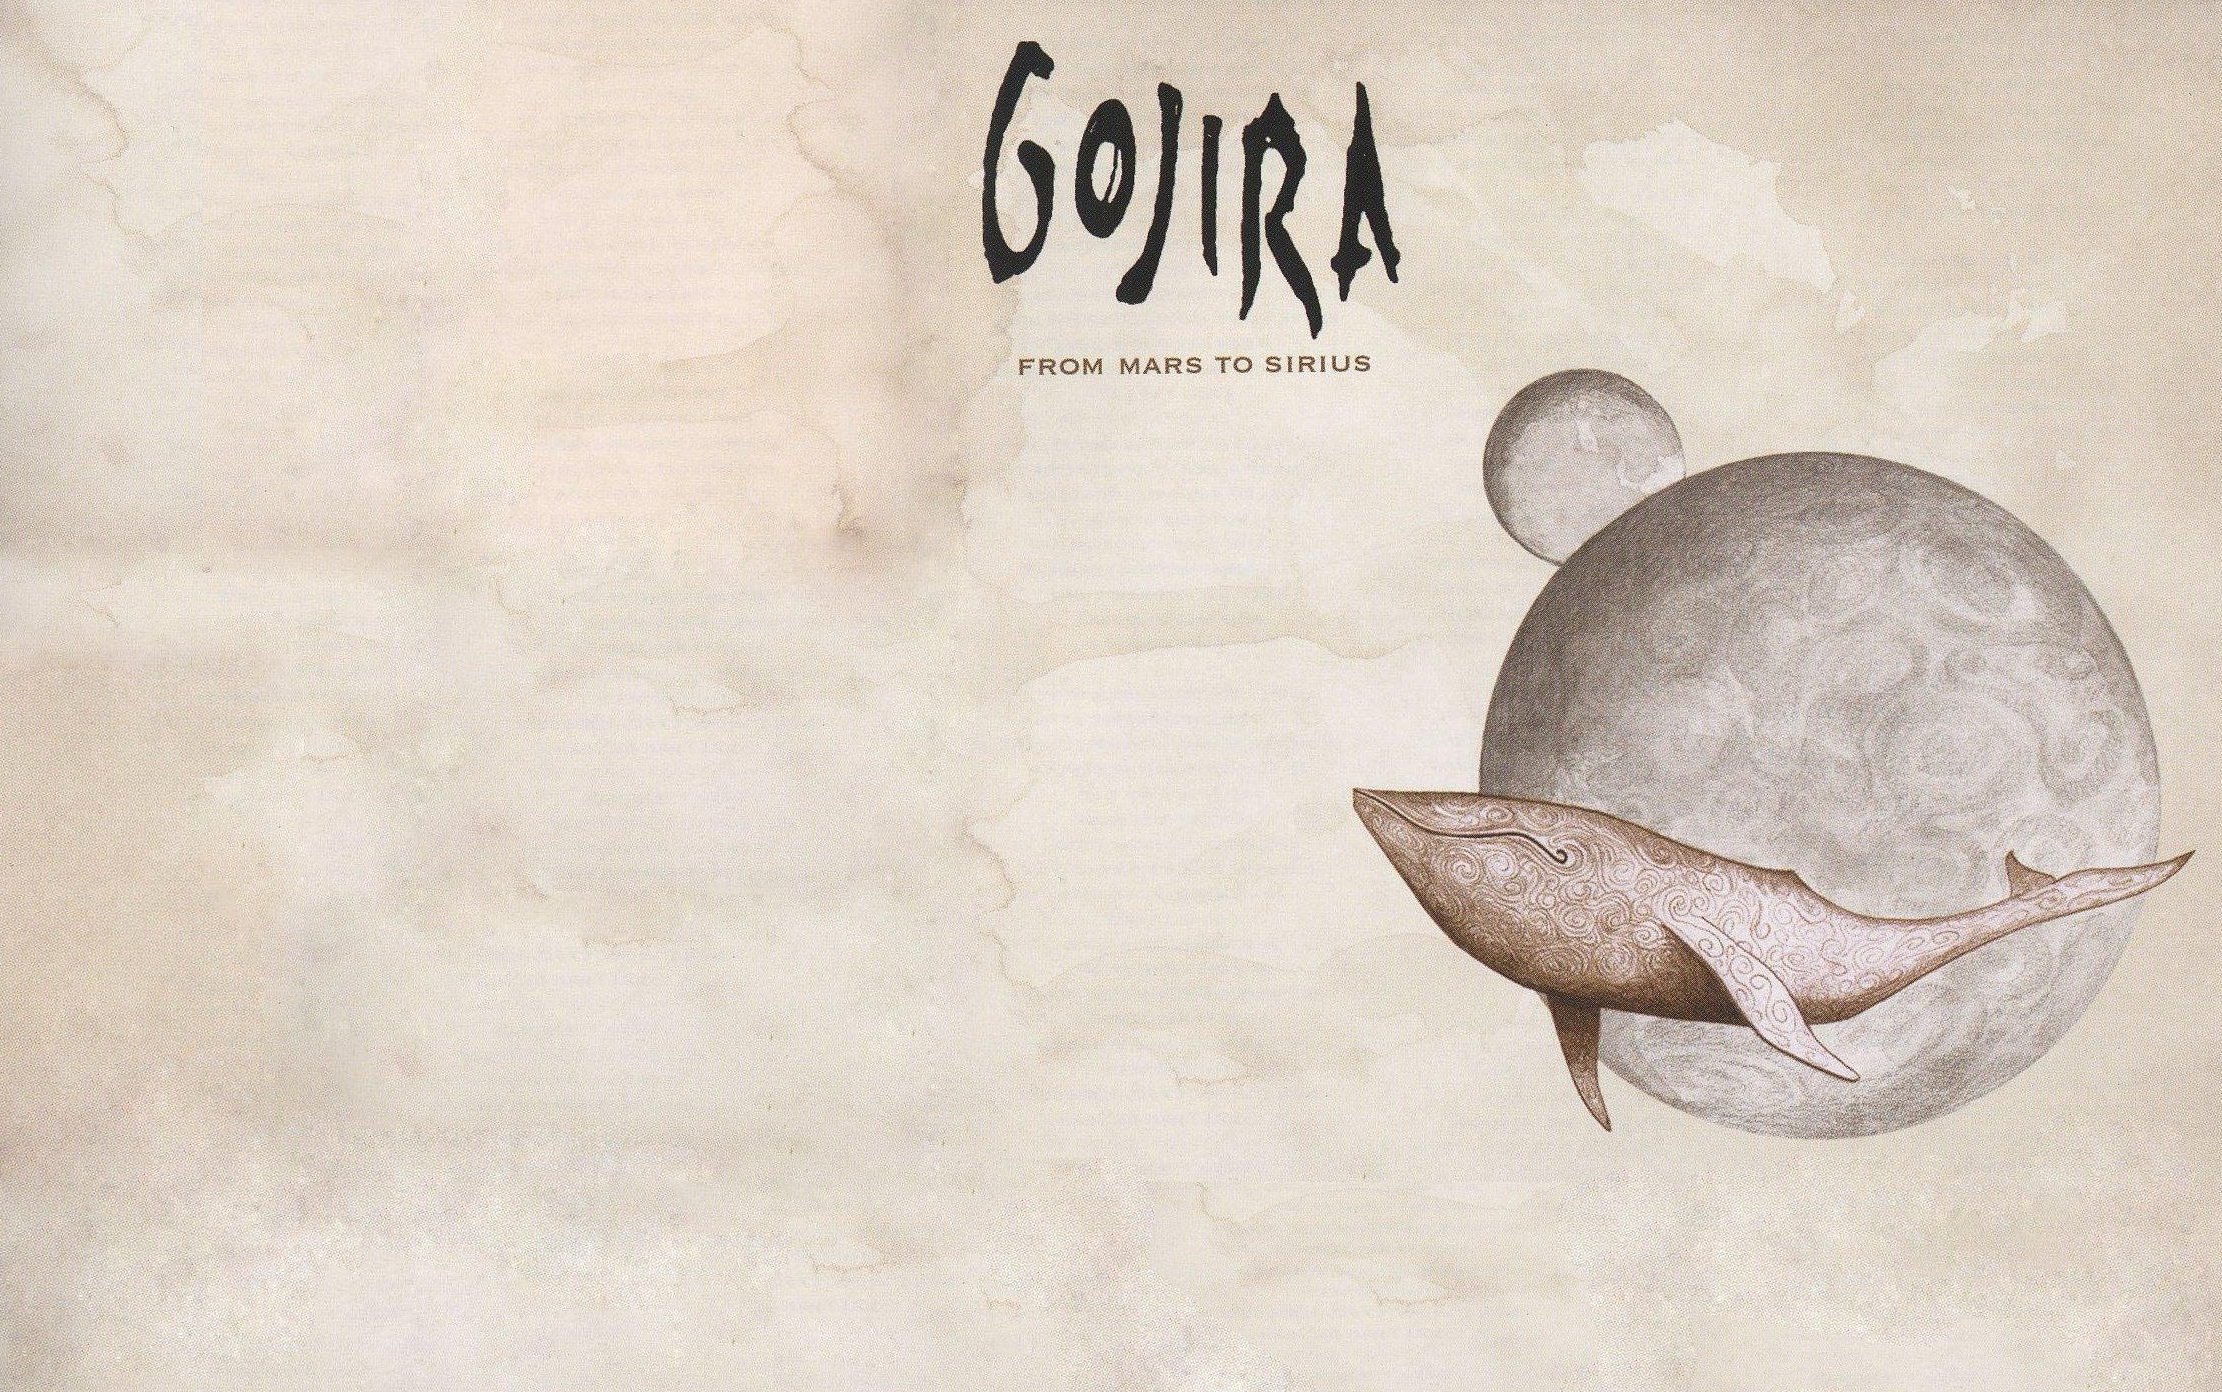 flying mars whales gojira 2222x1392 wallpaper High Quality 2222x1392